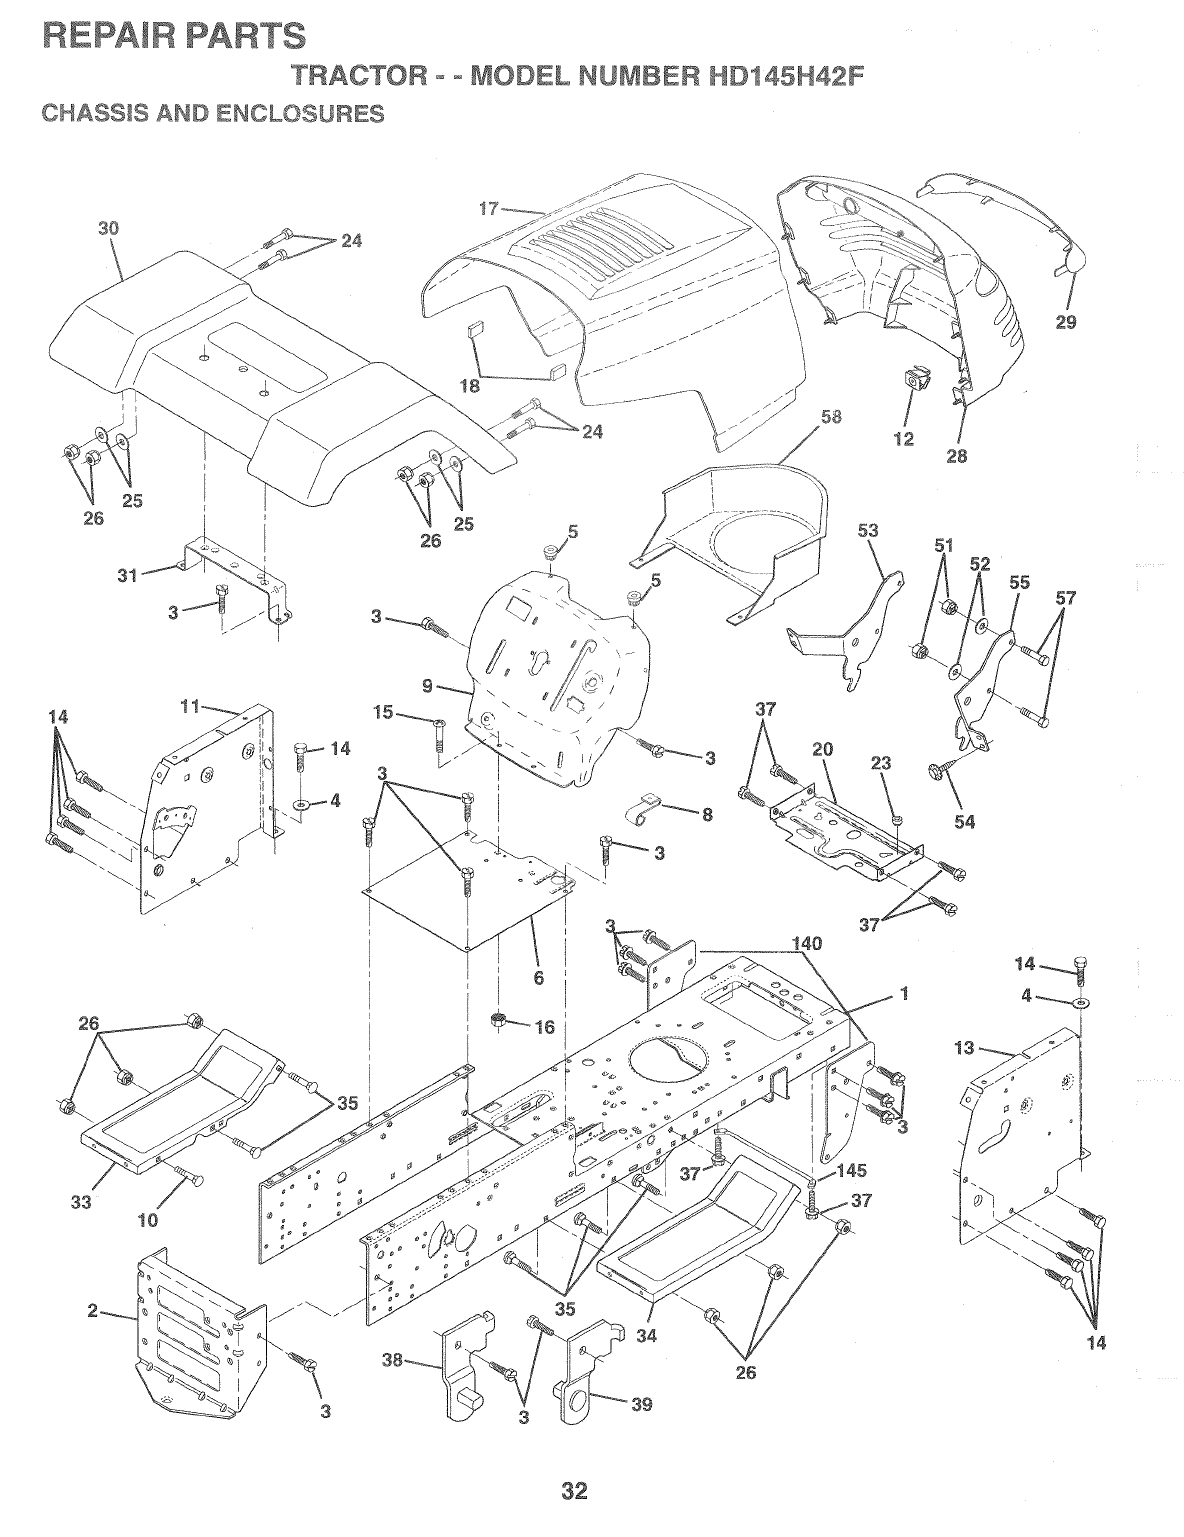 Page 32 of Poulan Lawn Mower HD145H42F User Guide